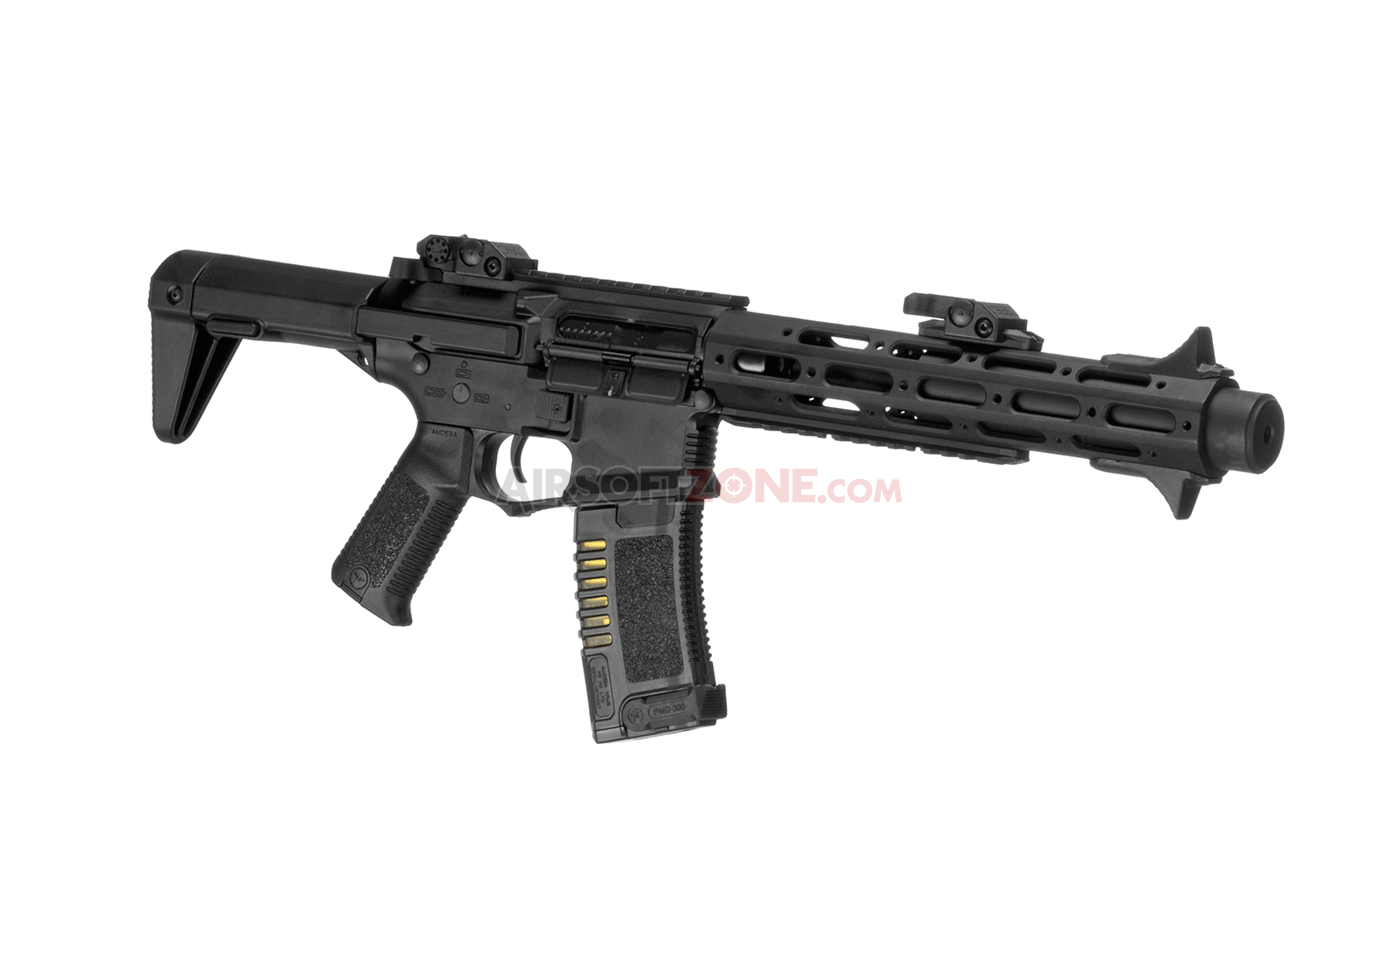 am 013 efcs black amoeba aeg airsoft aeg rifles online shop. Black Bedroom Furniture Sets. Home Design Ideas